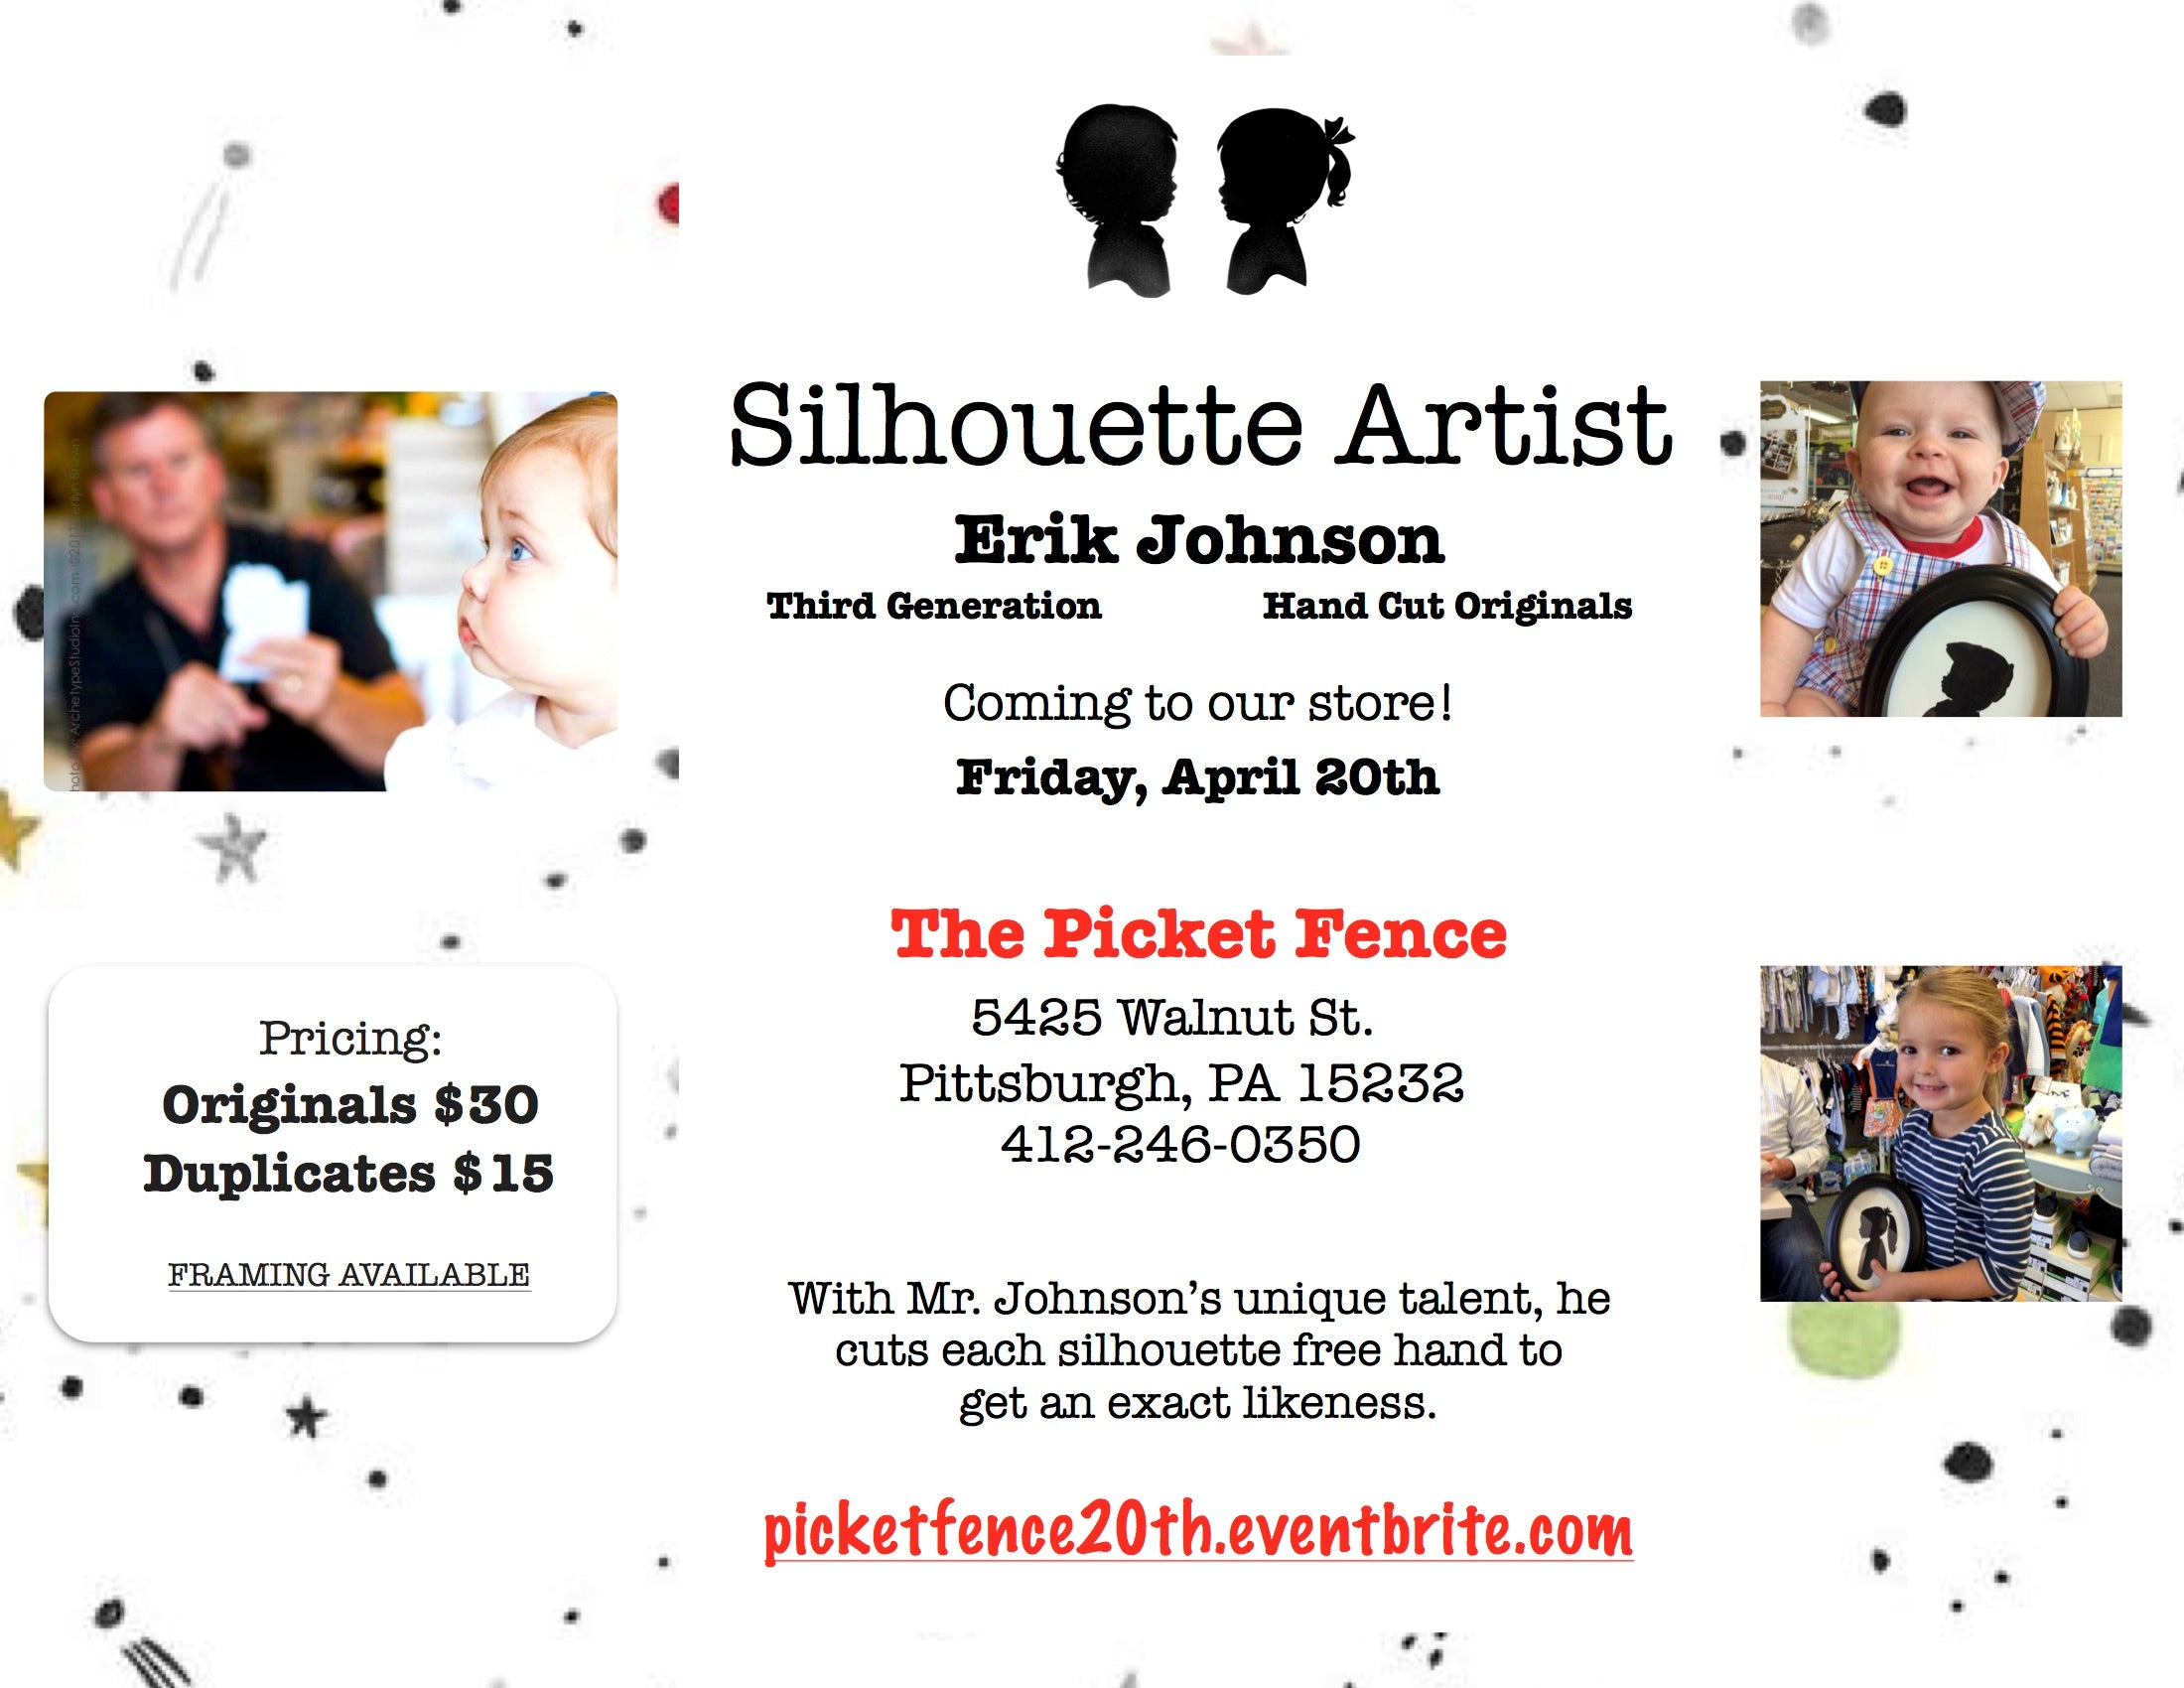 Silhouette Artist Erik Johnson, April 20th